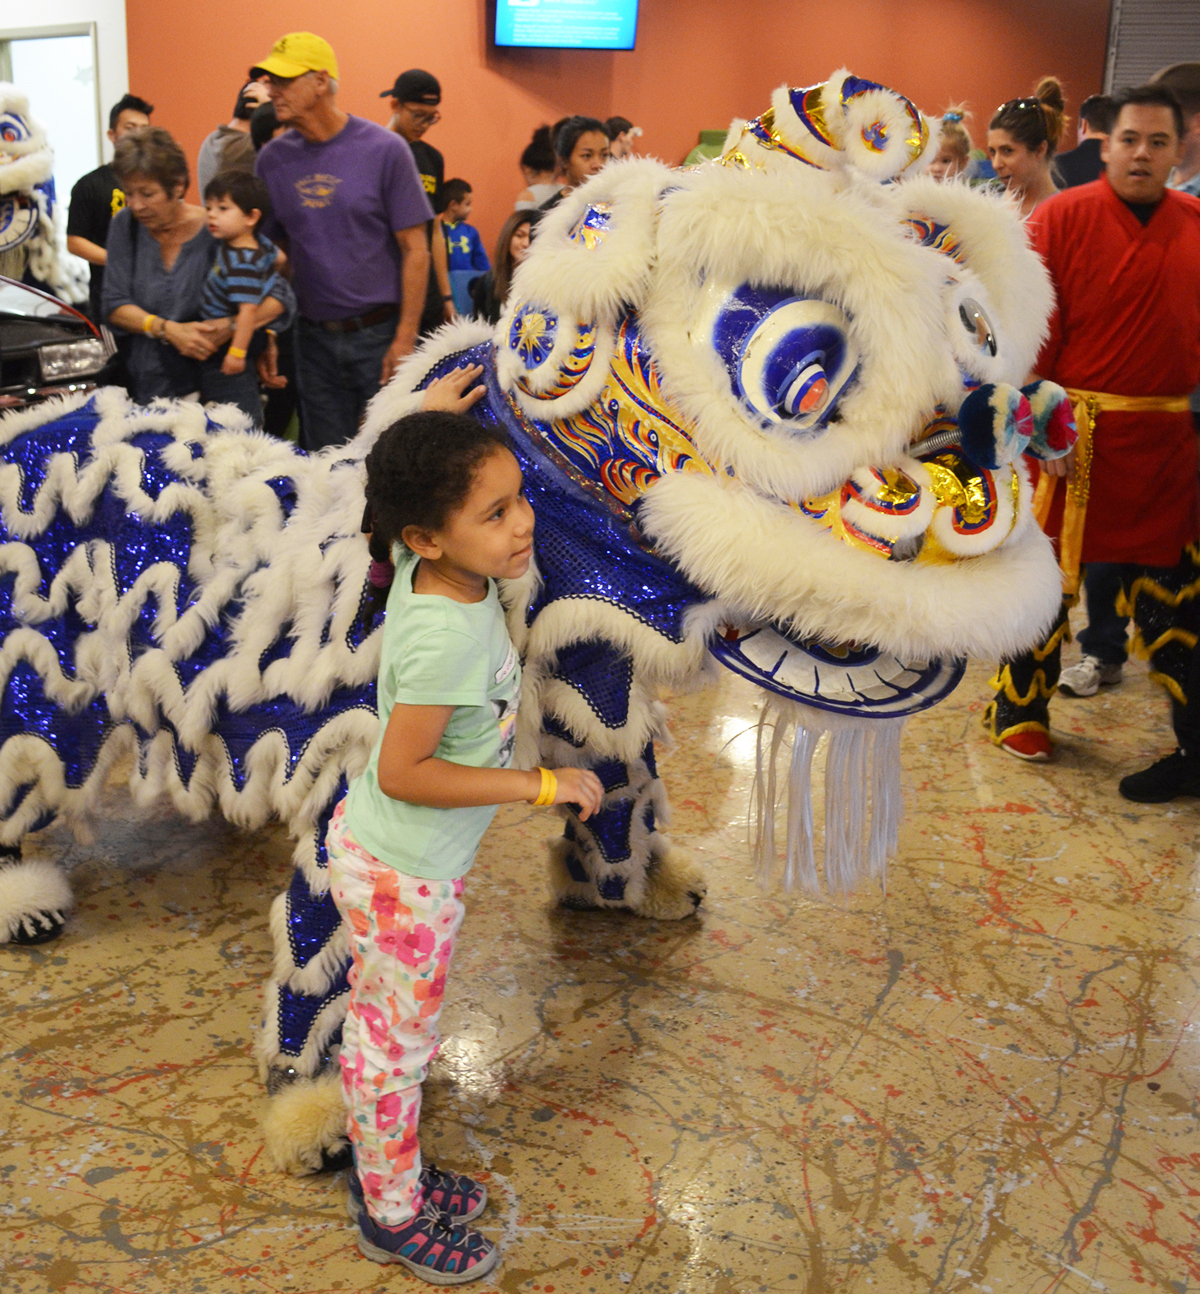 Families Explore Rich Chinese New Year Traditions — The Woodlands Children's Museum hosts special celebrationSaturday, Feb. 10